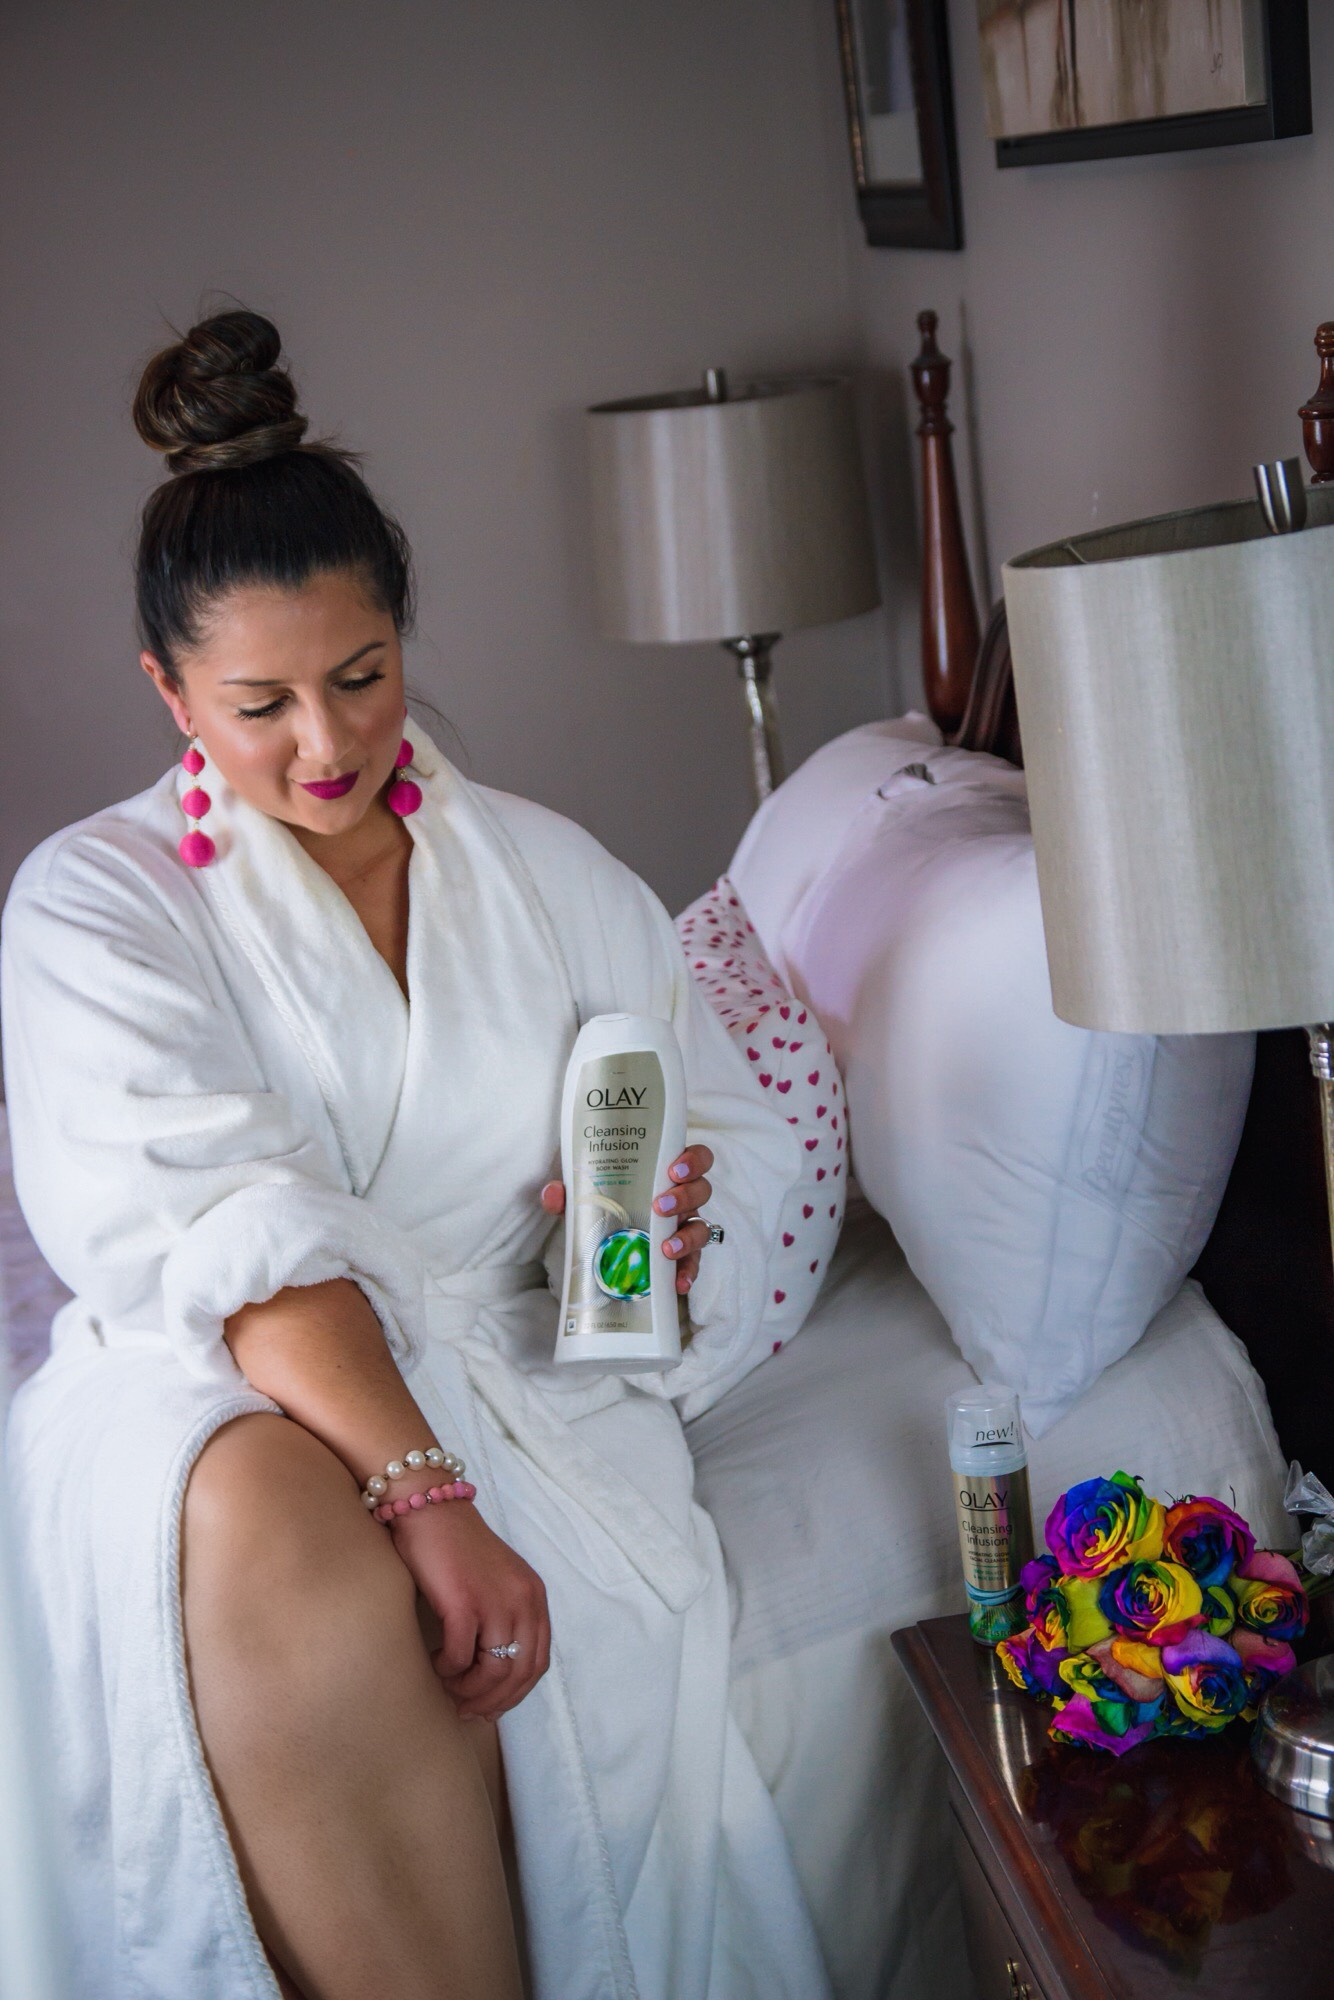 My #GlowUp Journey with Olay cleansing Infusions